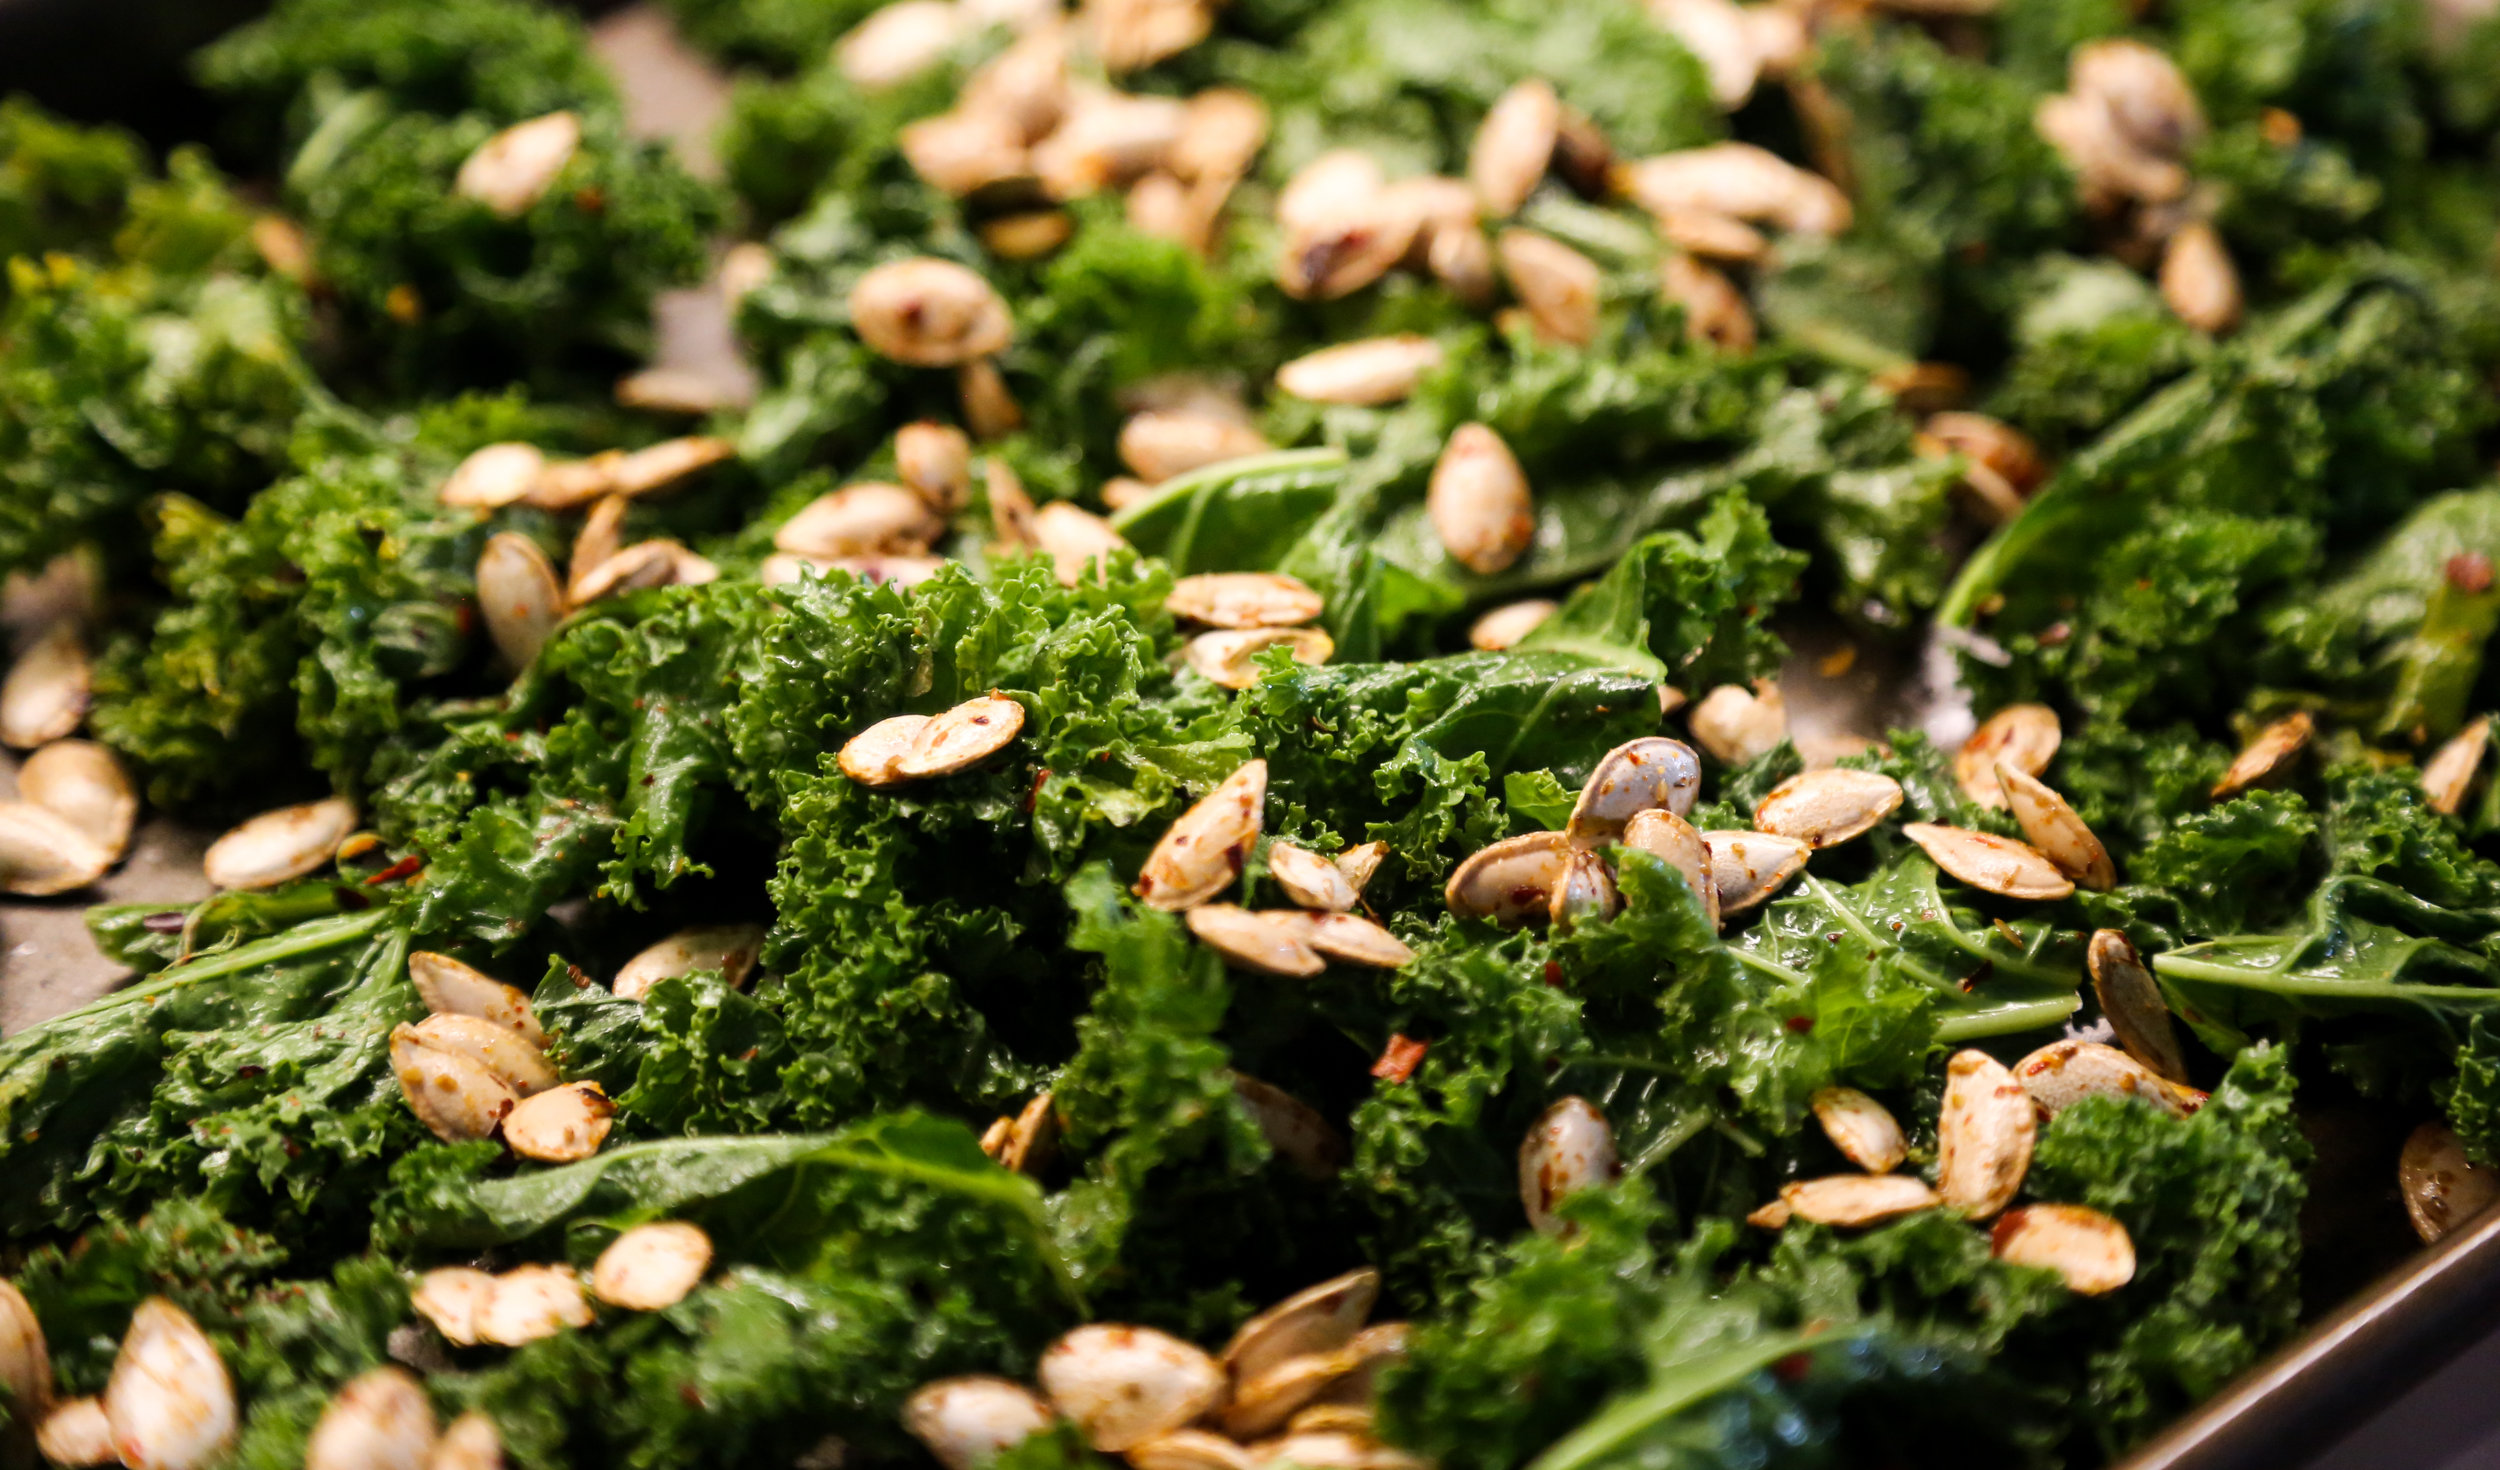 We baked the butternut seeds along with some kick'n kale chips. Recipe coming soon!